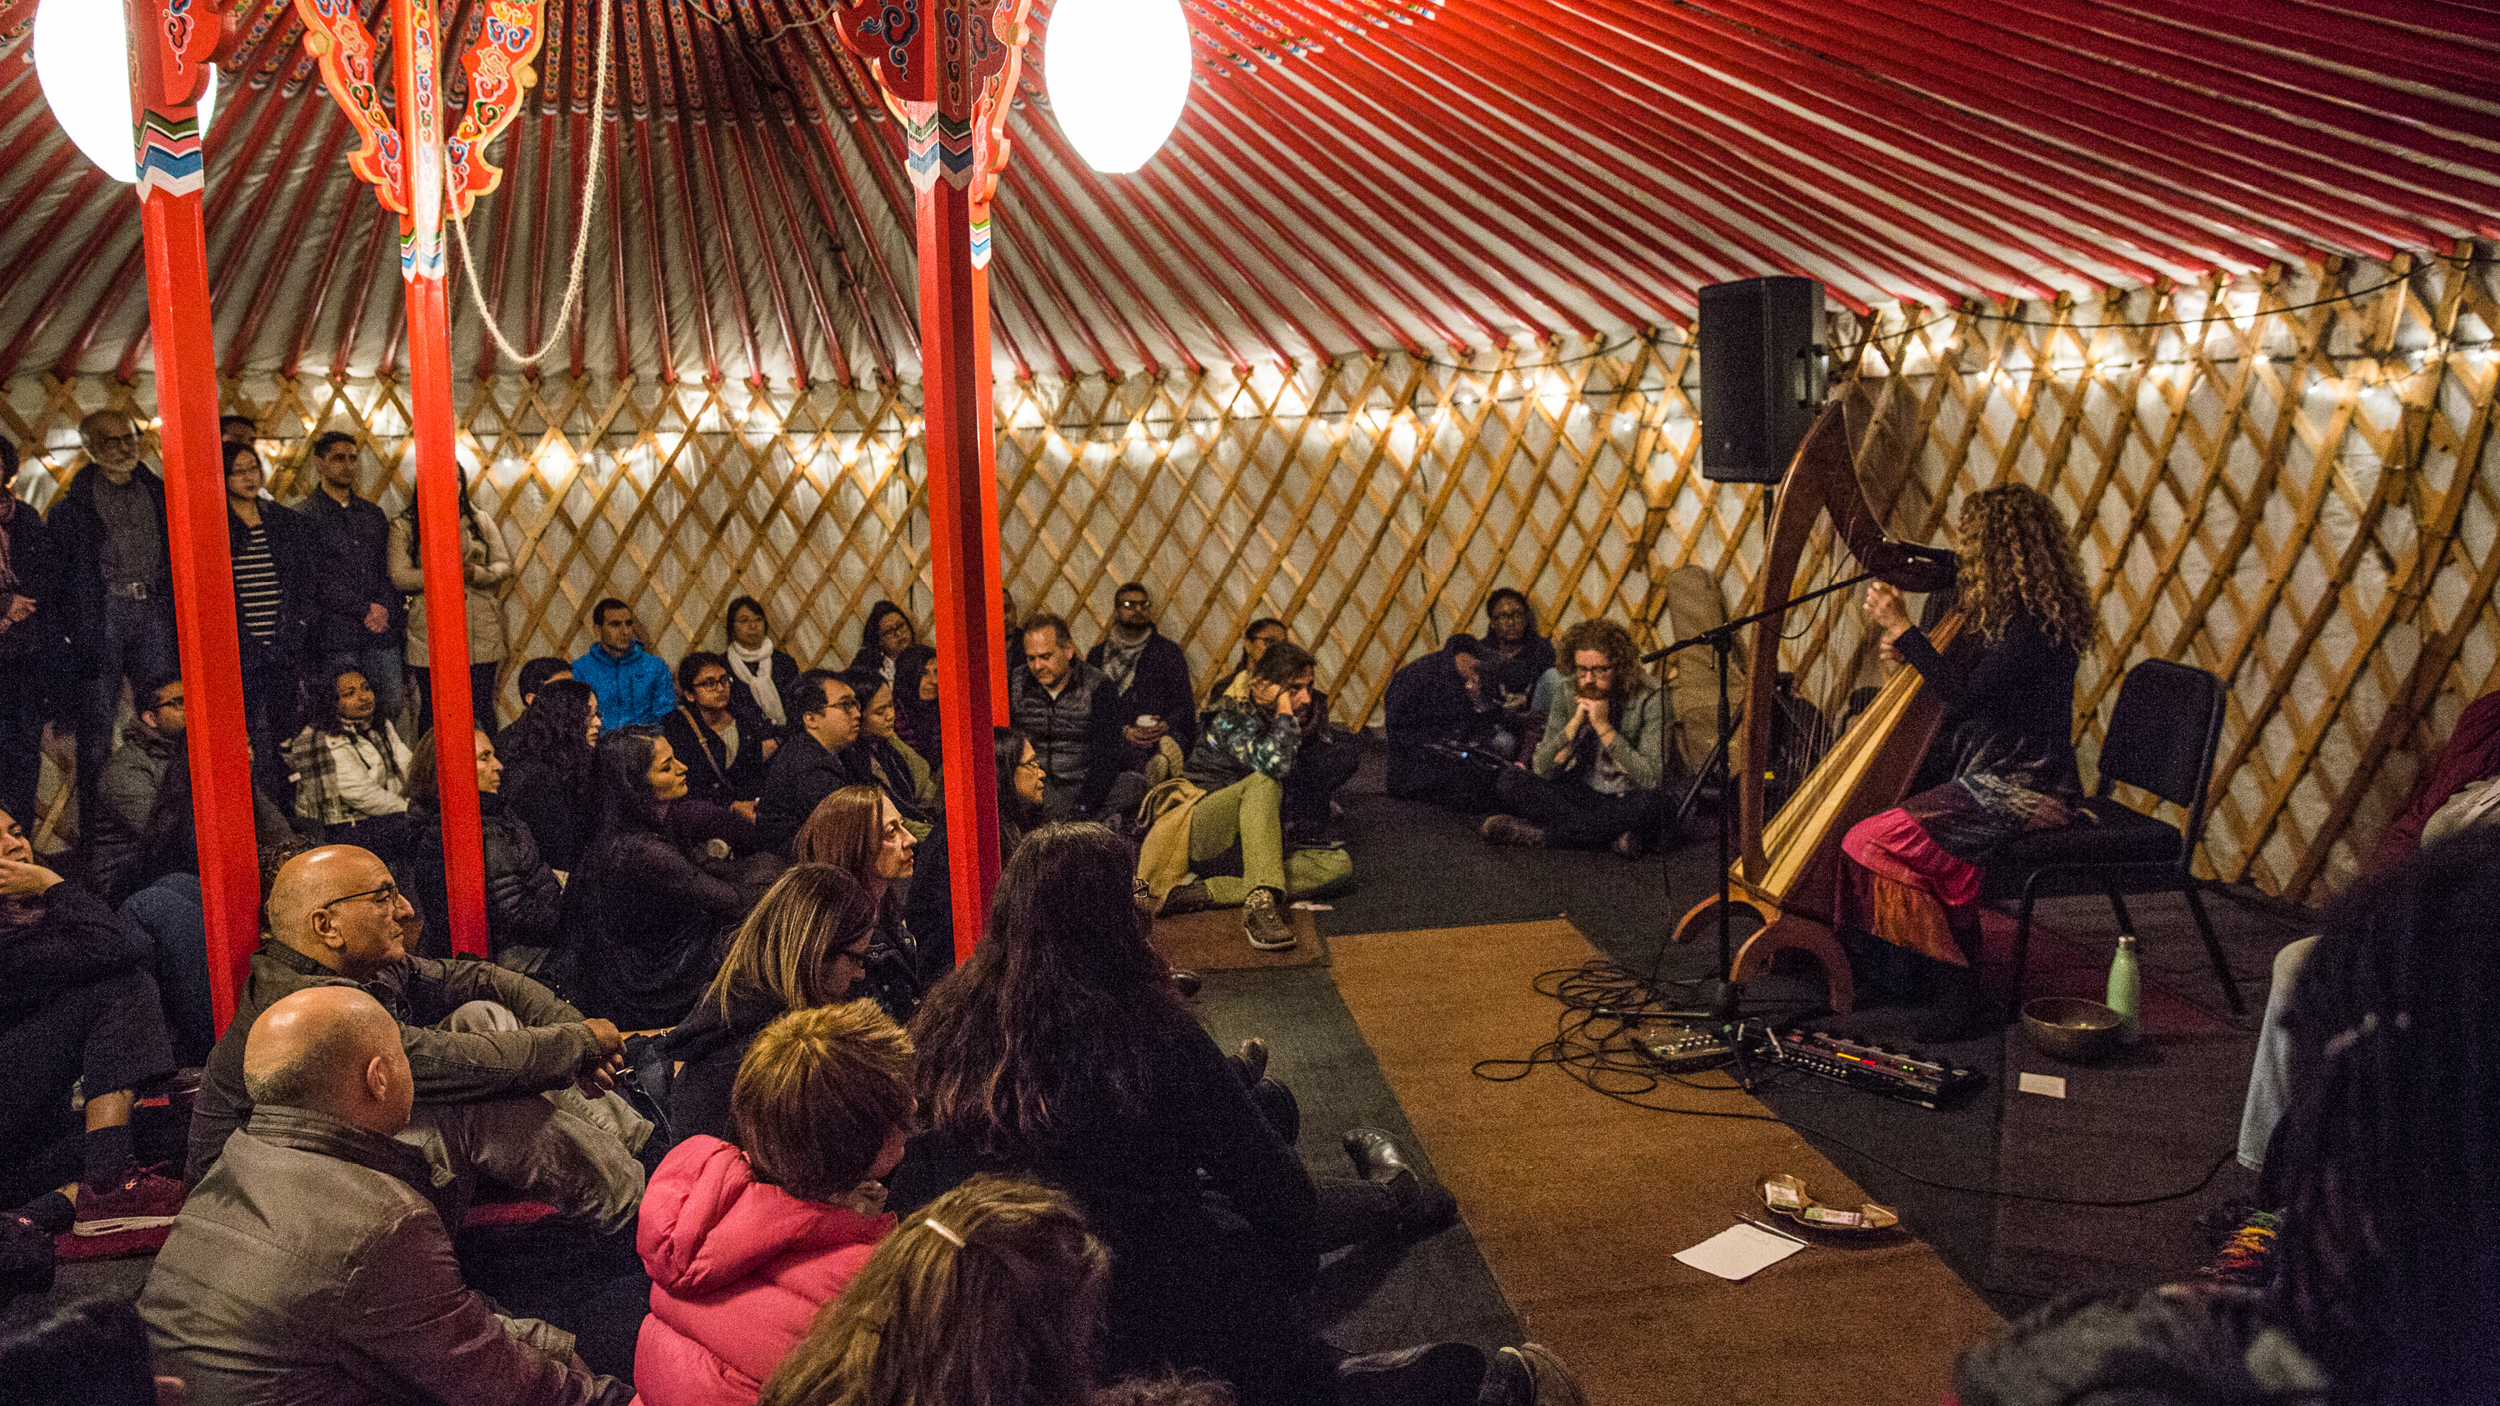 Spectators sitting on the floor enjoy the music of a harp player inside a Mongolian yurt.